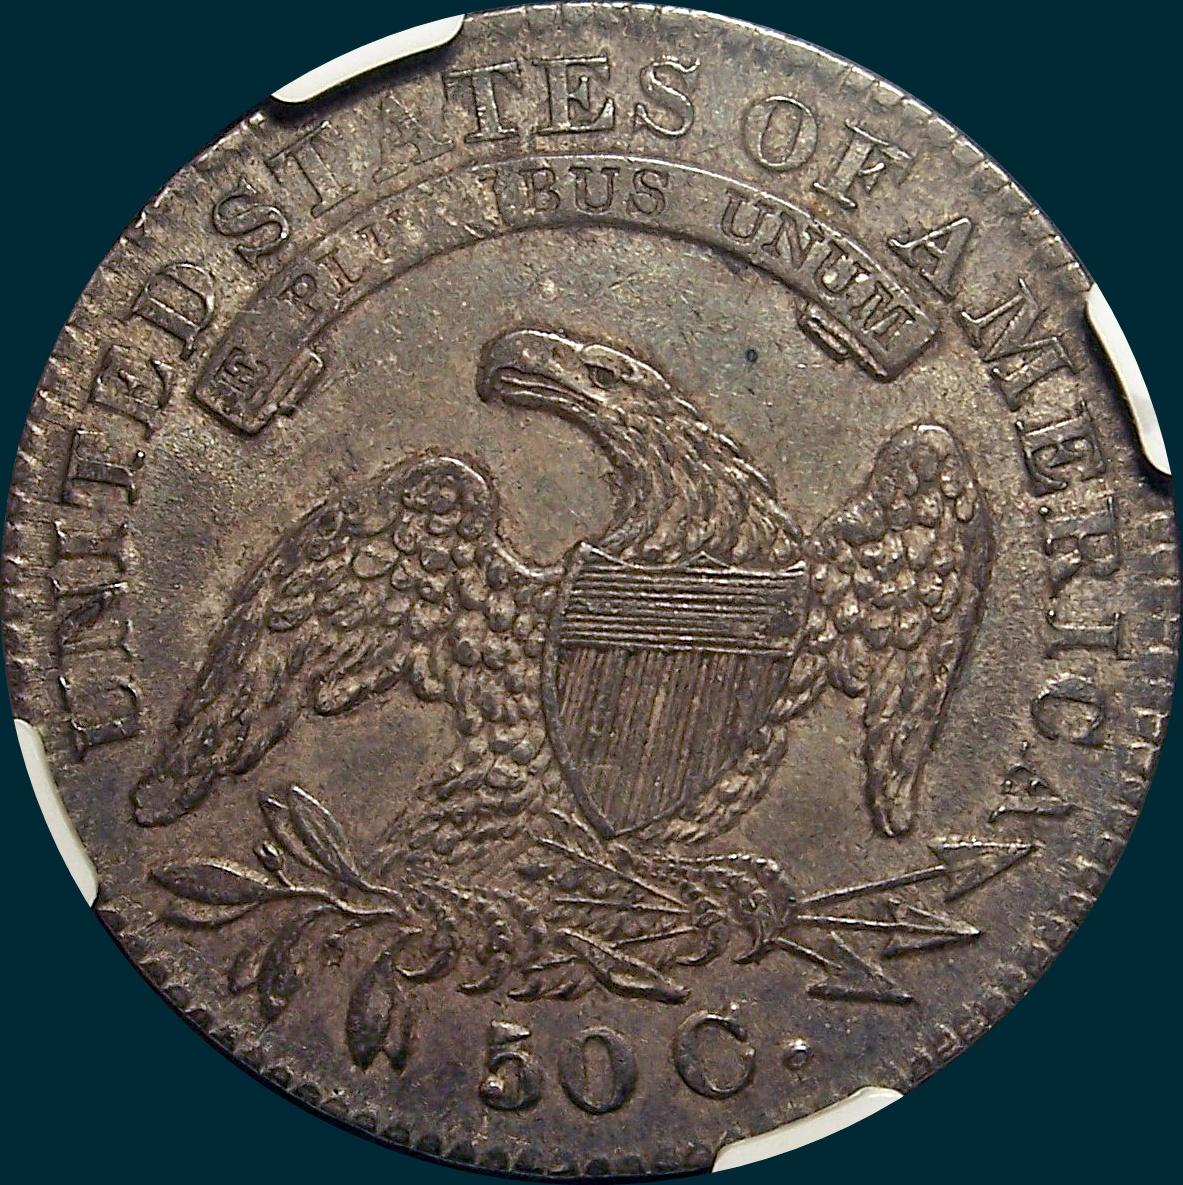 1832 O-110 capped bust half dollar